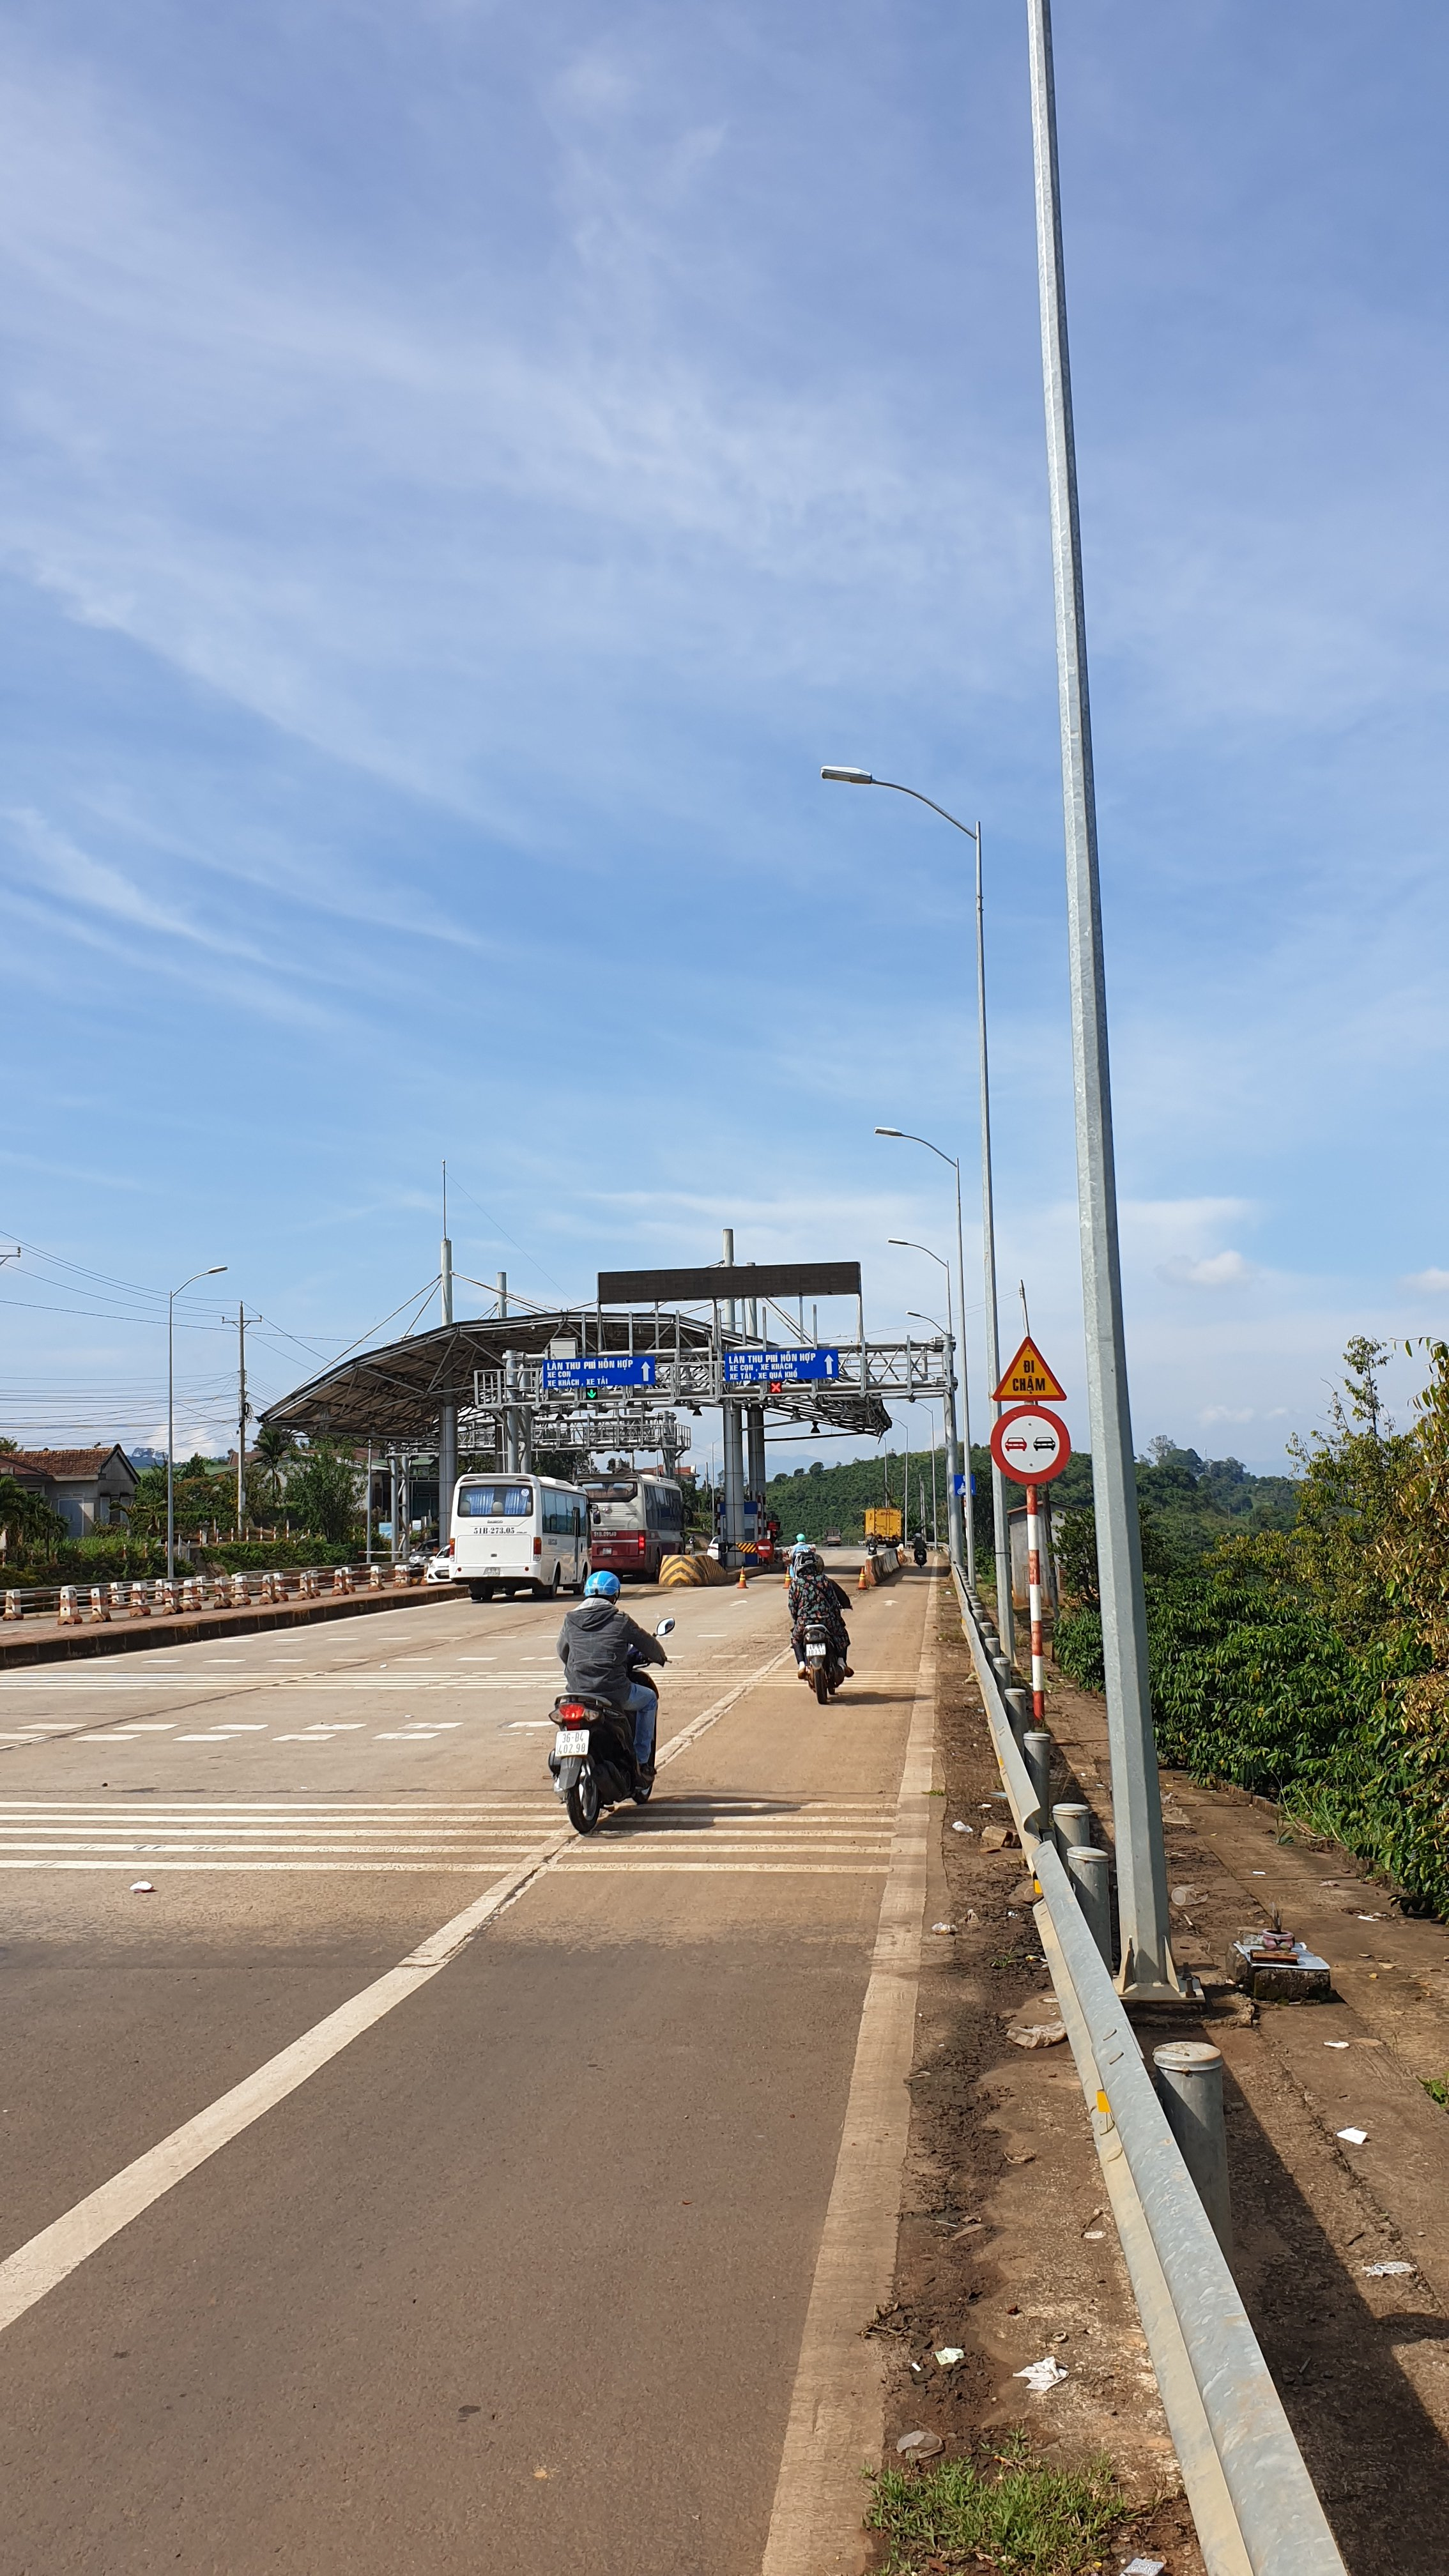 A Vietnamese toll booth with motorcycles skipping the toll through a dedicated filter lane